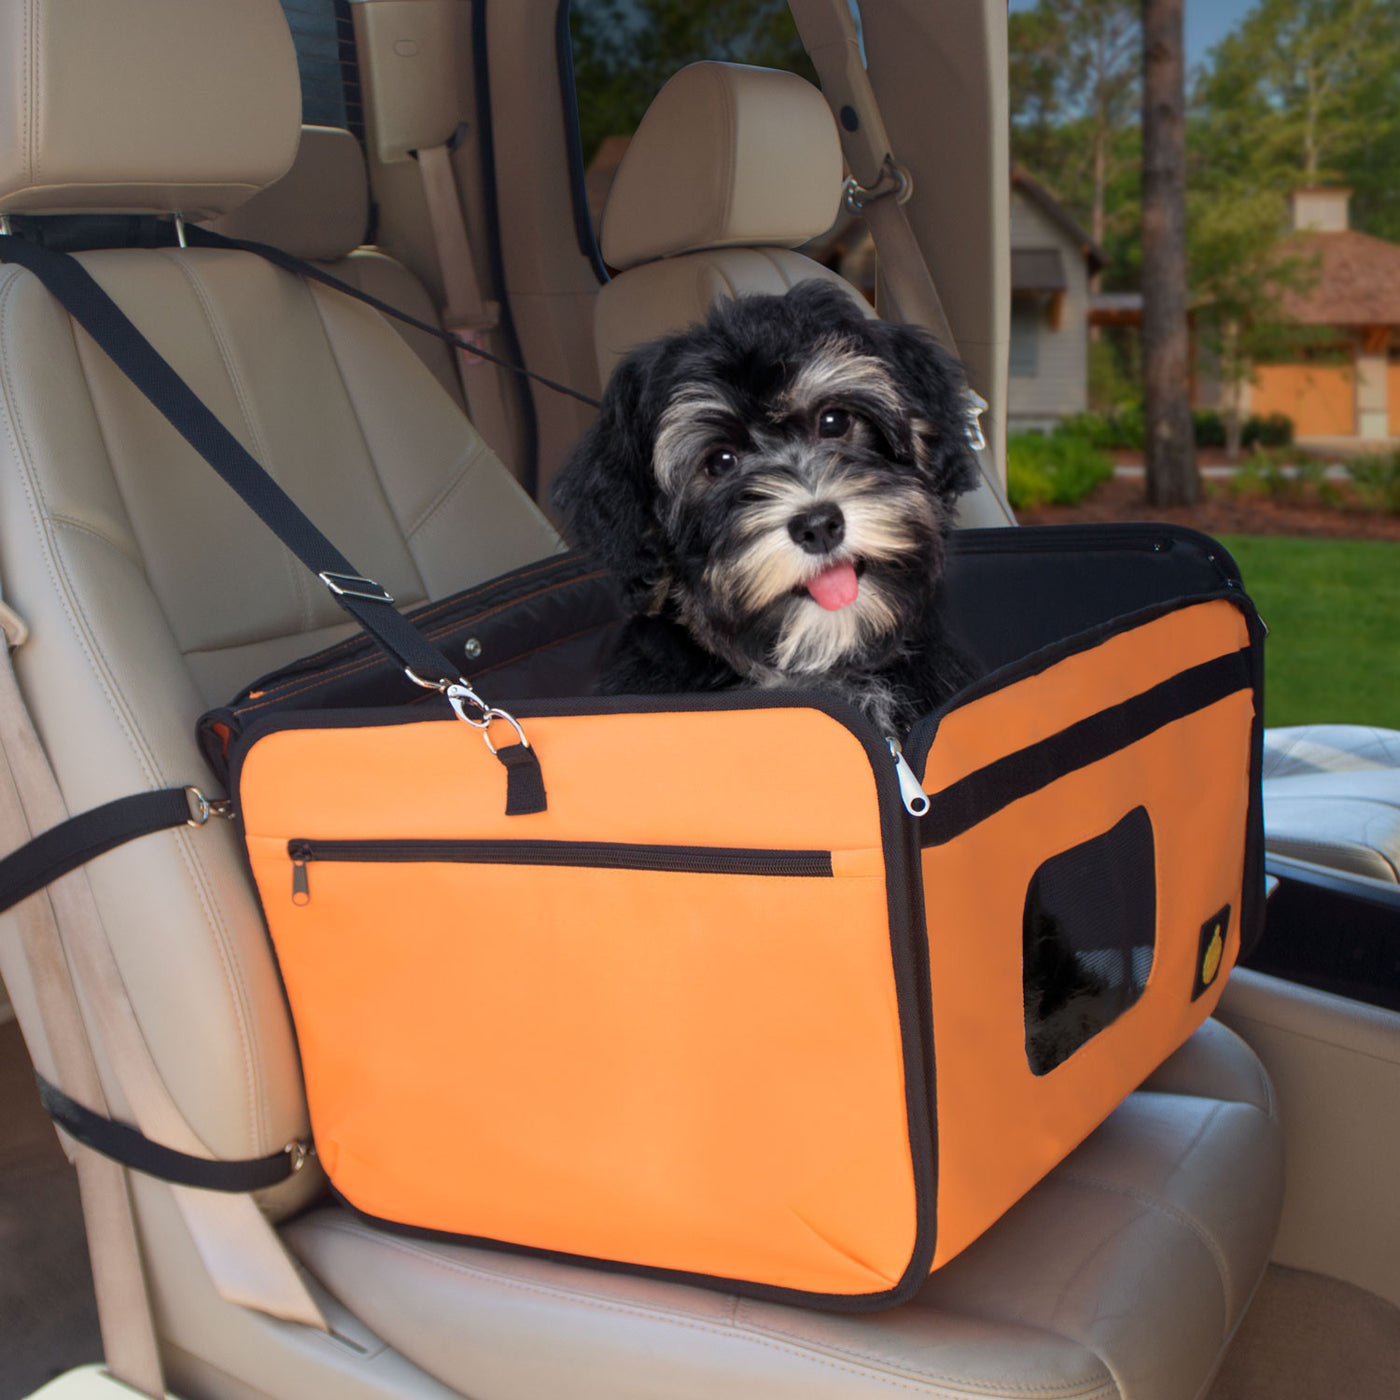 Side View Of Booster Seat Strapped In A Car With Dog Inside